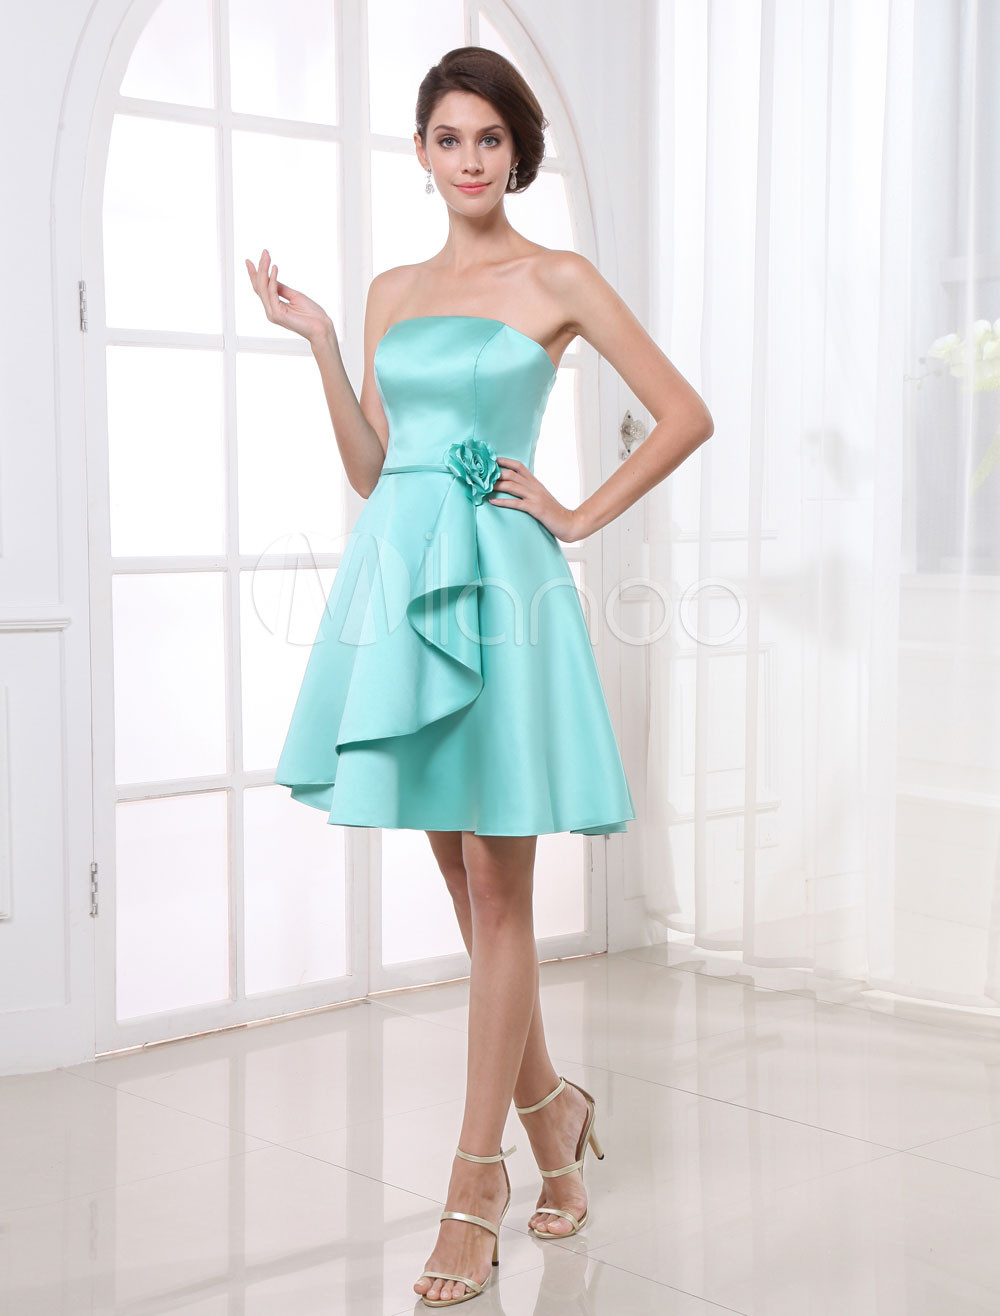 A-line Green Satin Floral Strapless Knee-Length Fashion Bridesmaid Dress